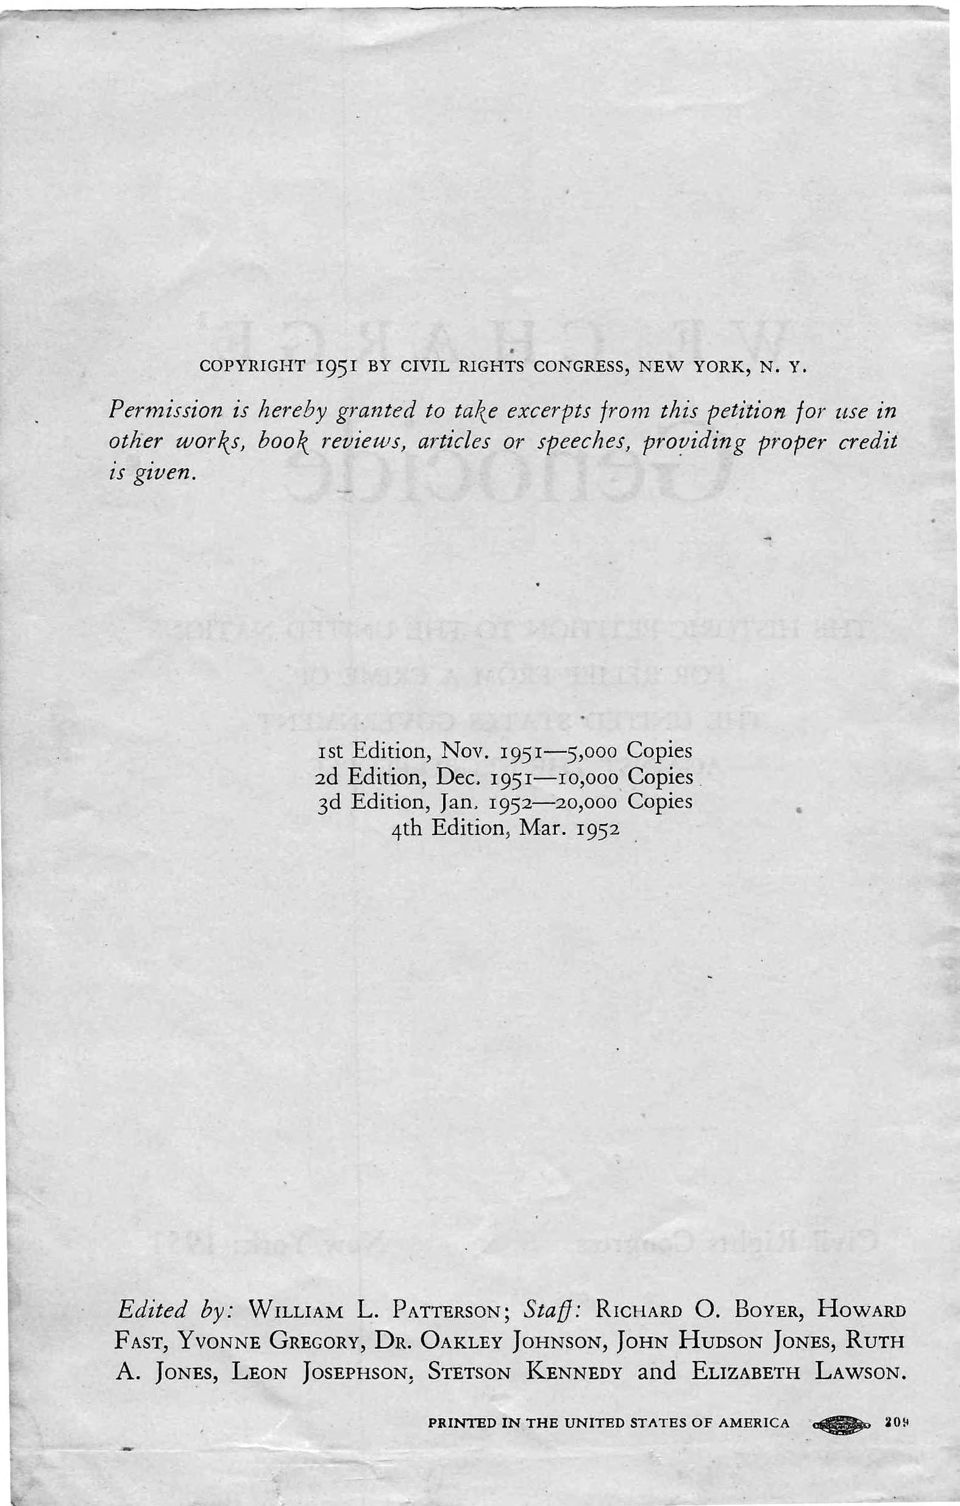 Copies 3d Edition, Jan. 1952-2o,ooo Copies 4th Edition, Mar. 1952 Edited by: WILLIAM L. PATTERSoN; Staf}: RrcHARD 0.